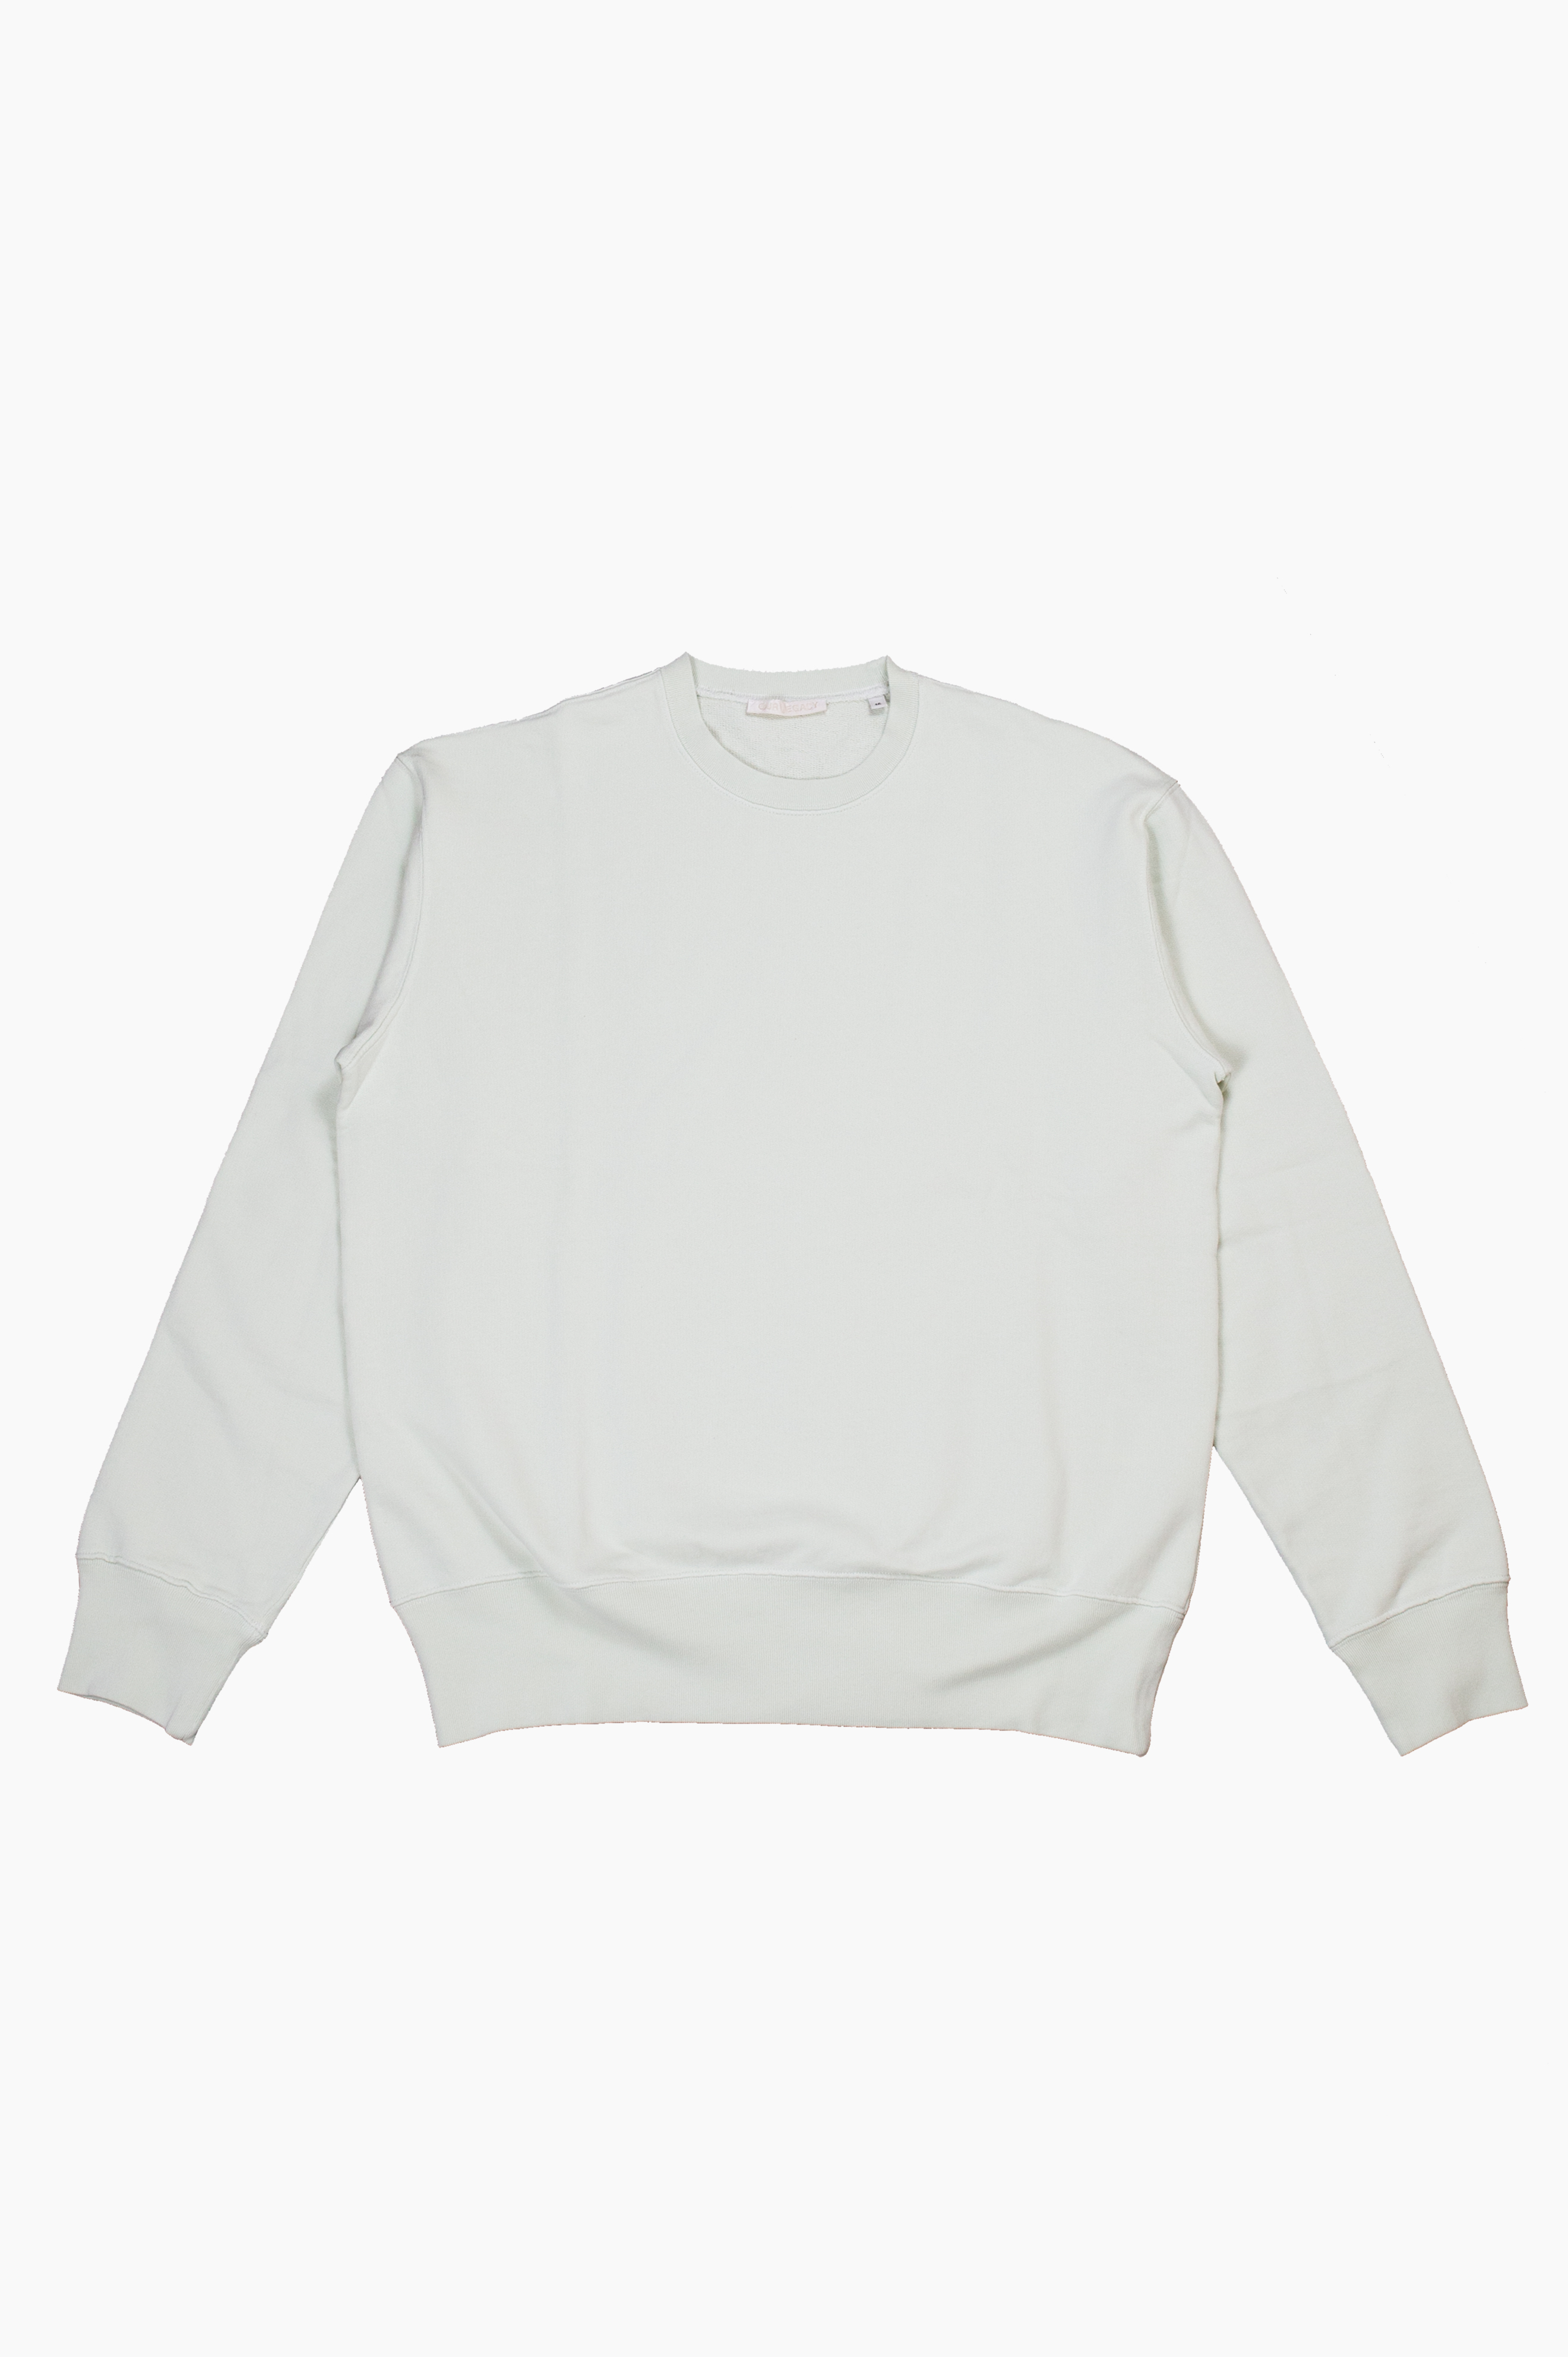 Patch Sweat Loop Translucent White